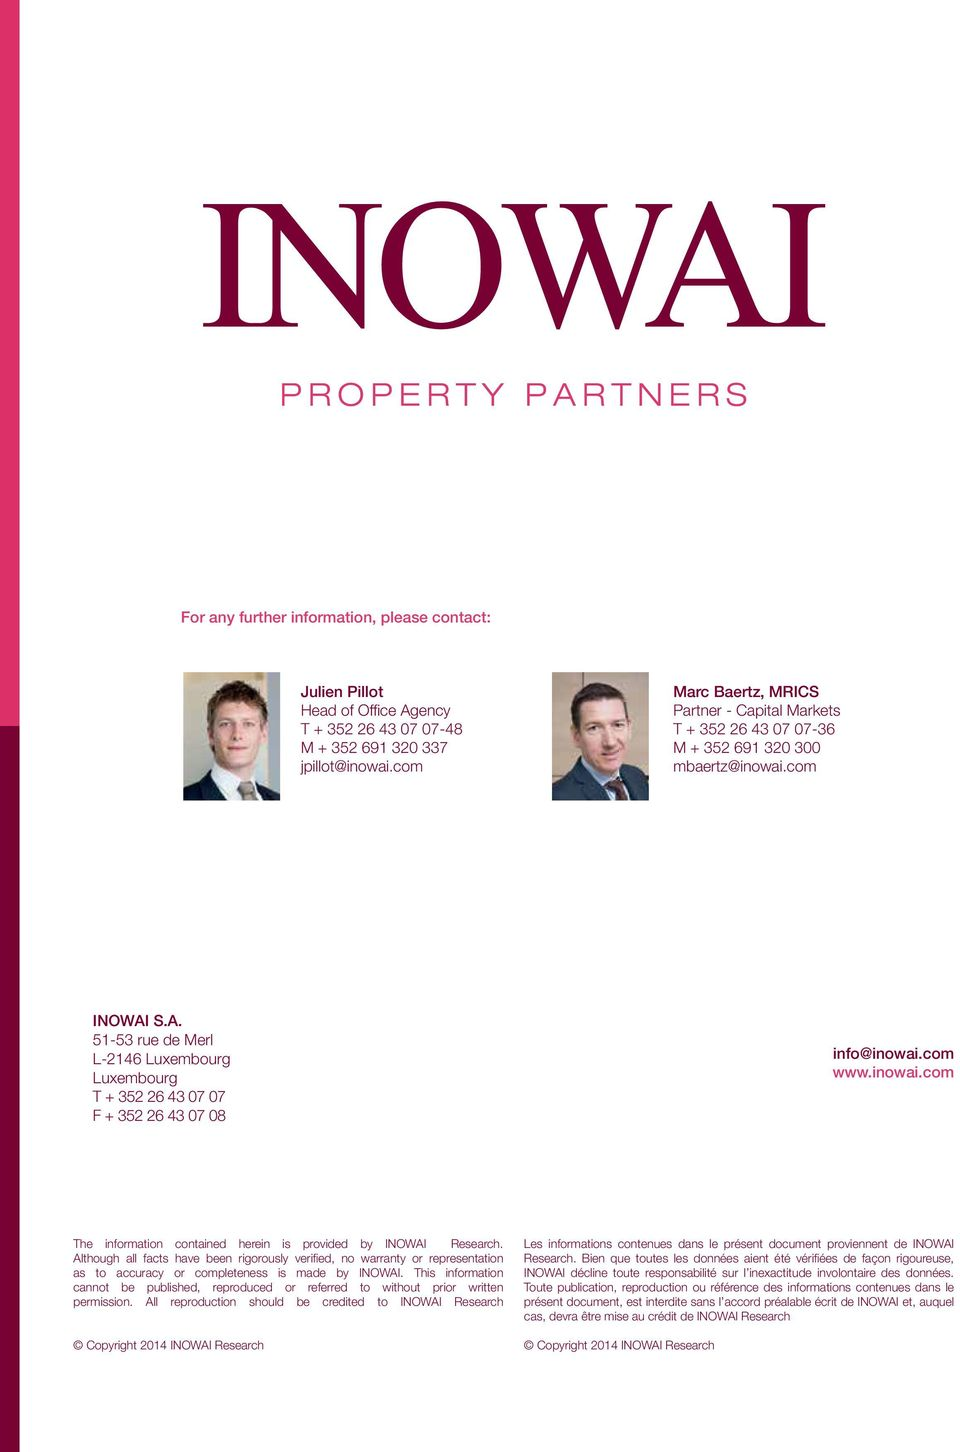 Although all facts have been rigorously verified, no warranty or representation as to accuracy or completeness is made by INOWAI.